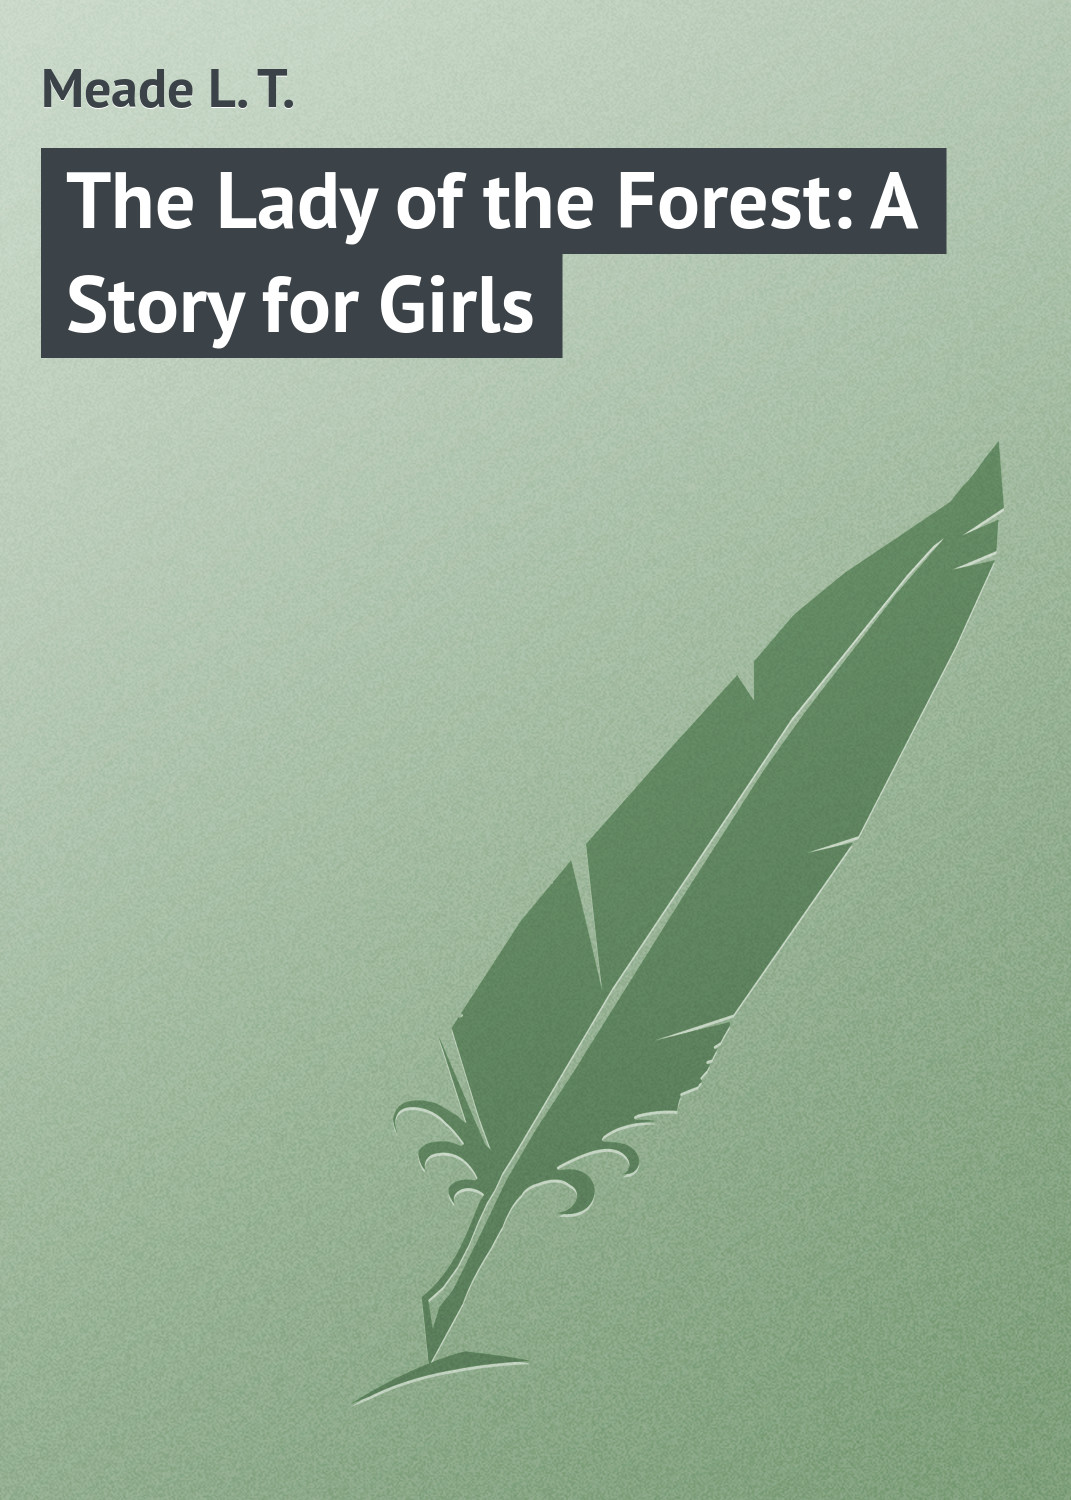 Meade L. T. The Lady of the Forest: A Story for Girls